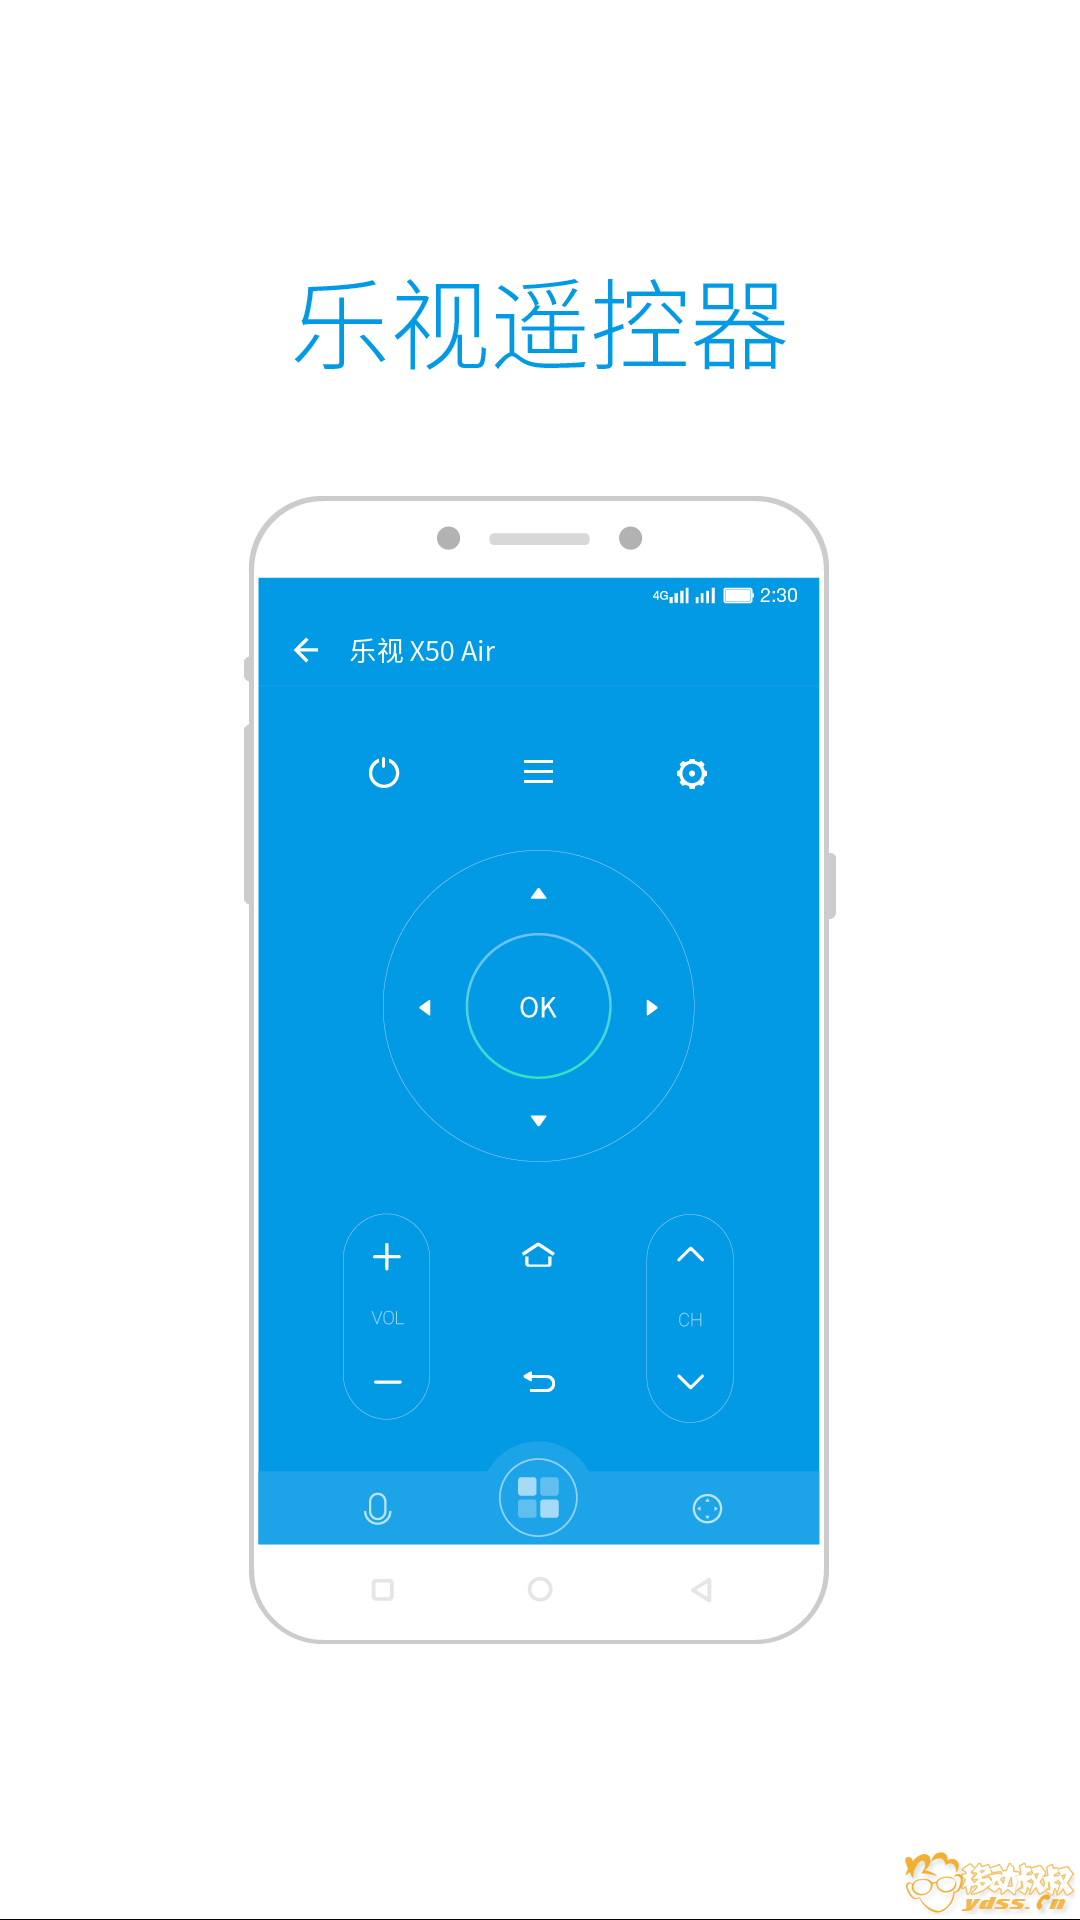 Screenshot_2015-01-01-03-35-39-702_com.letv.android.remotecontrol.png